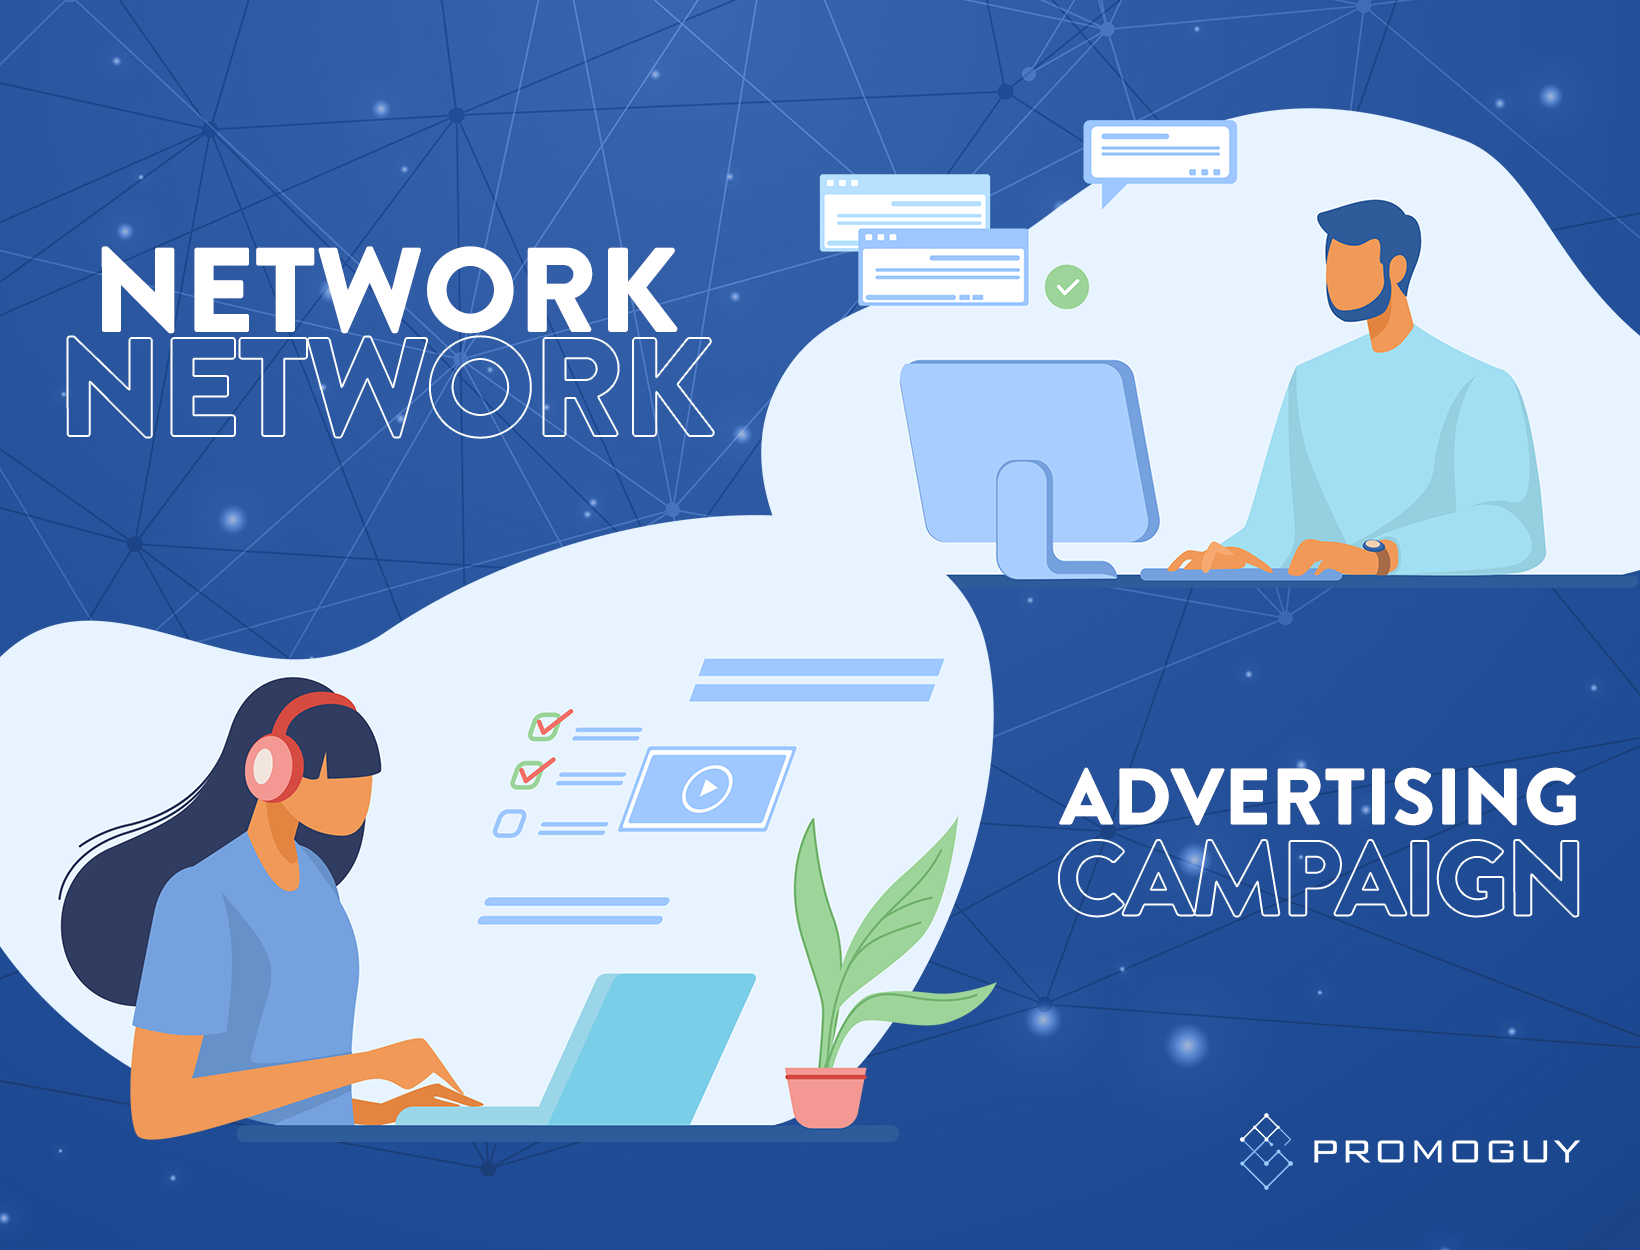 Network Advertising Campaign - E-commerce